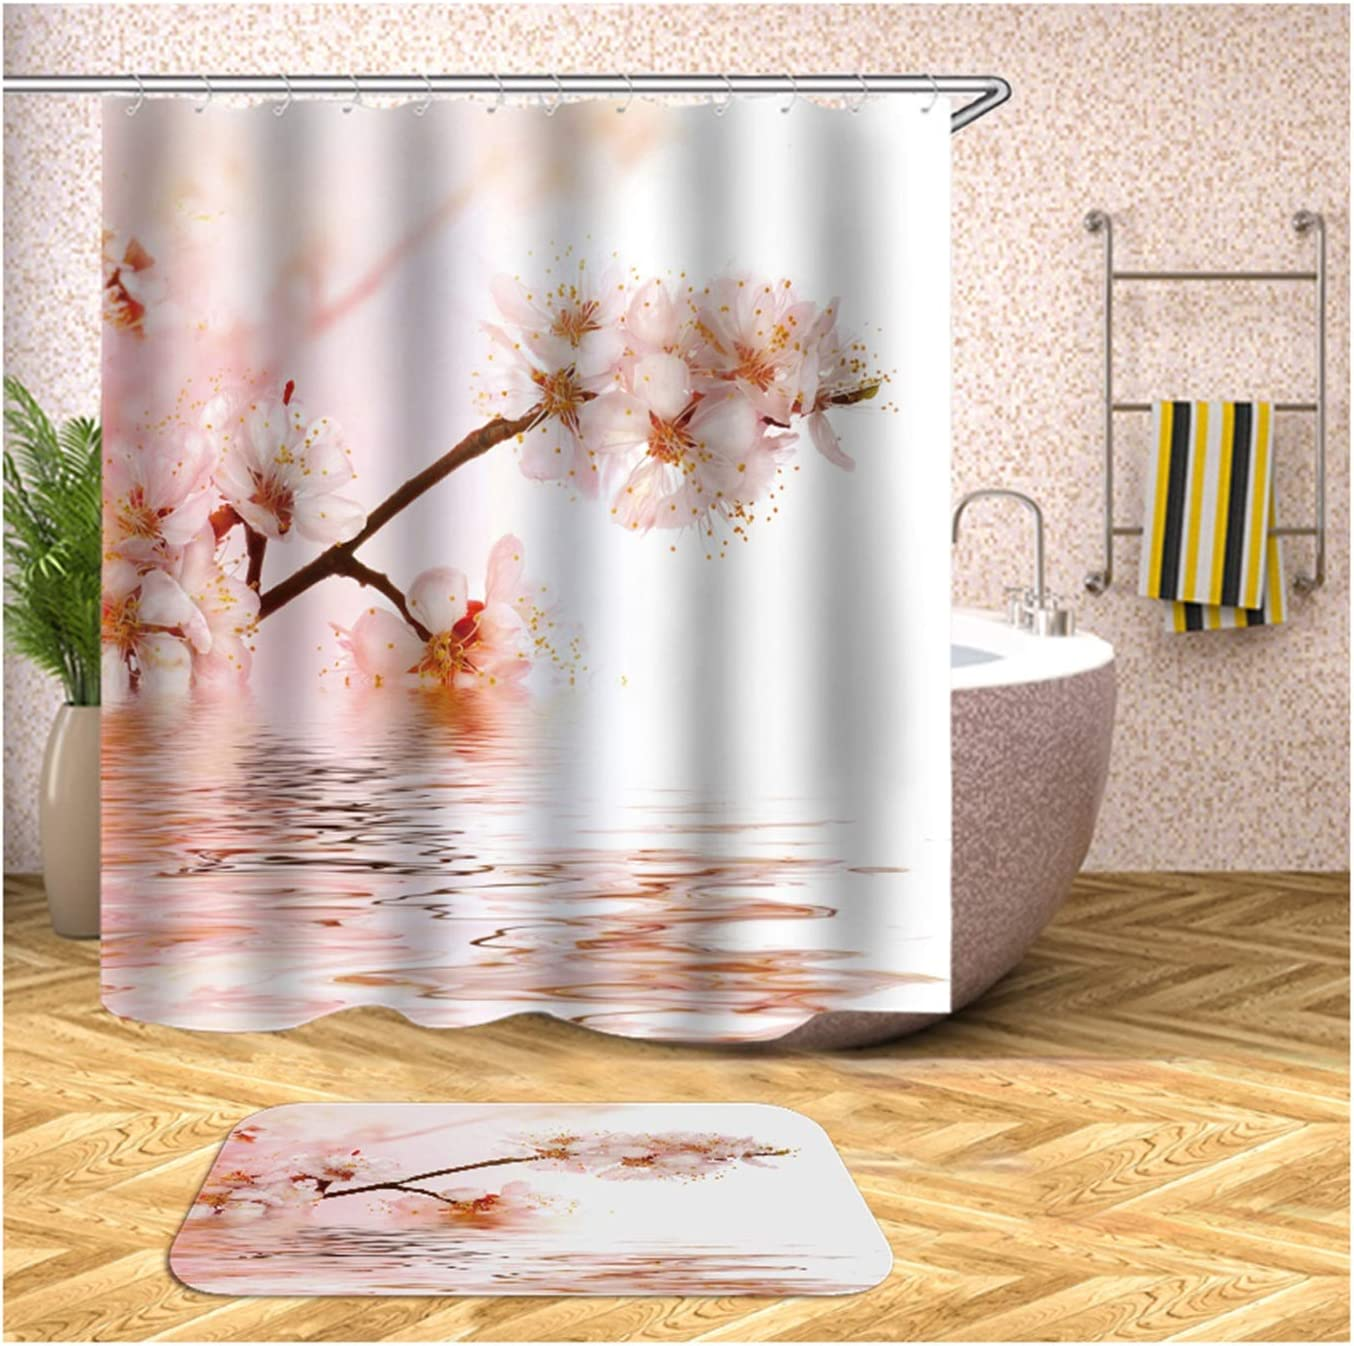 Gnzoe Matching excellence 2021 model Shower Curtain and Rug Bat Home Flower Set Pink